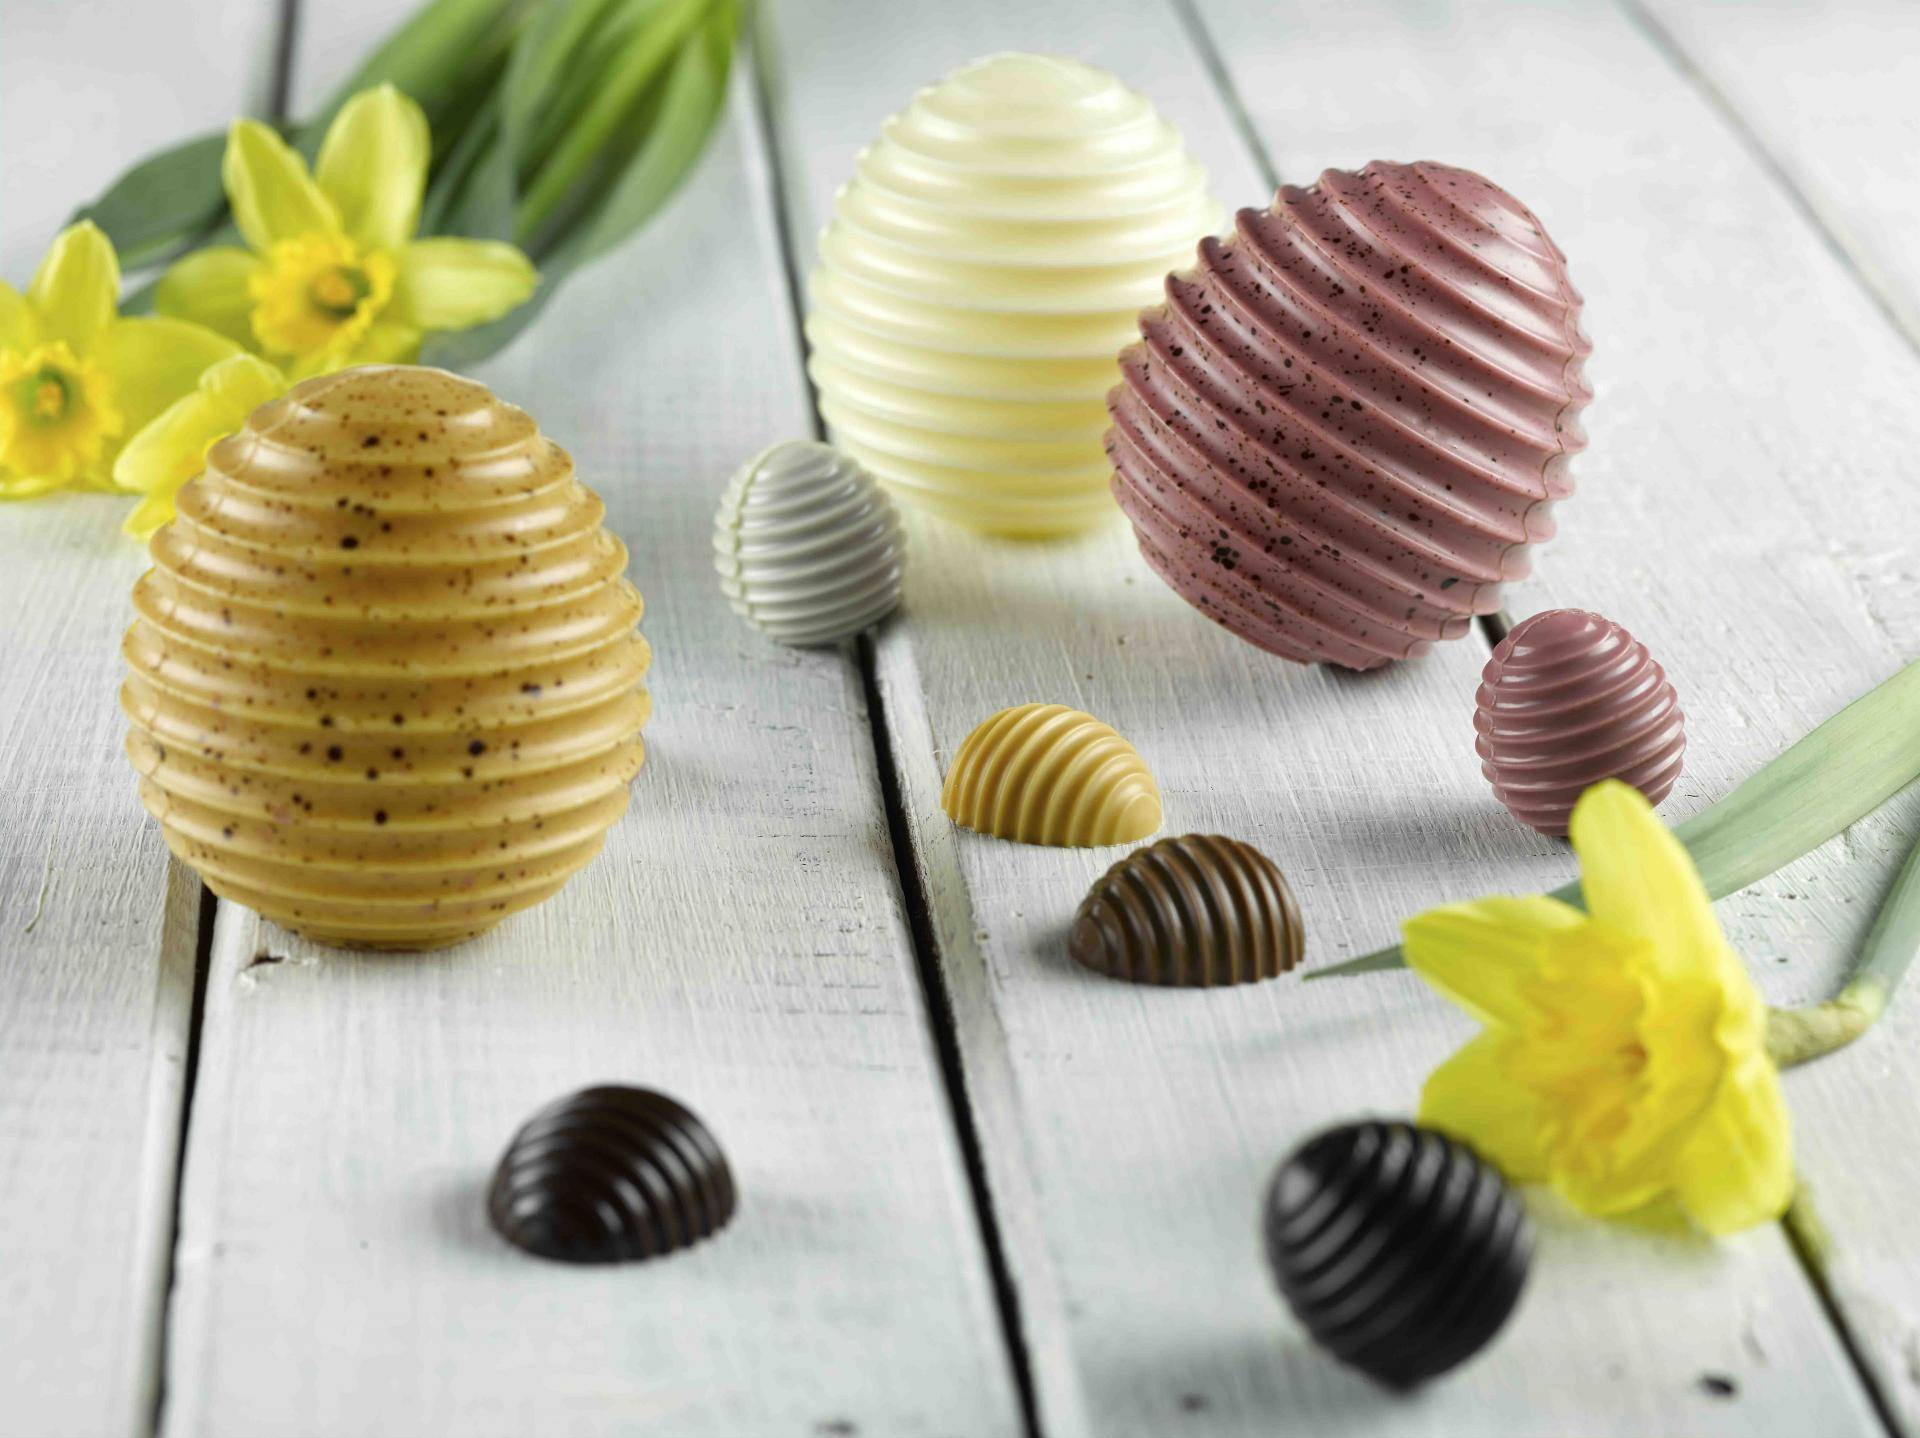 Carma chocolate easter eggs